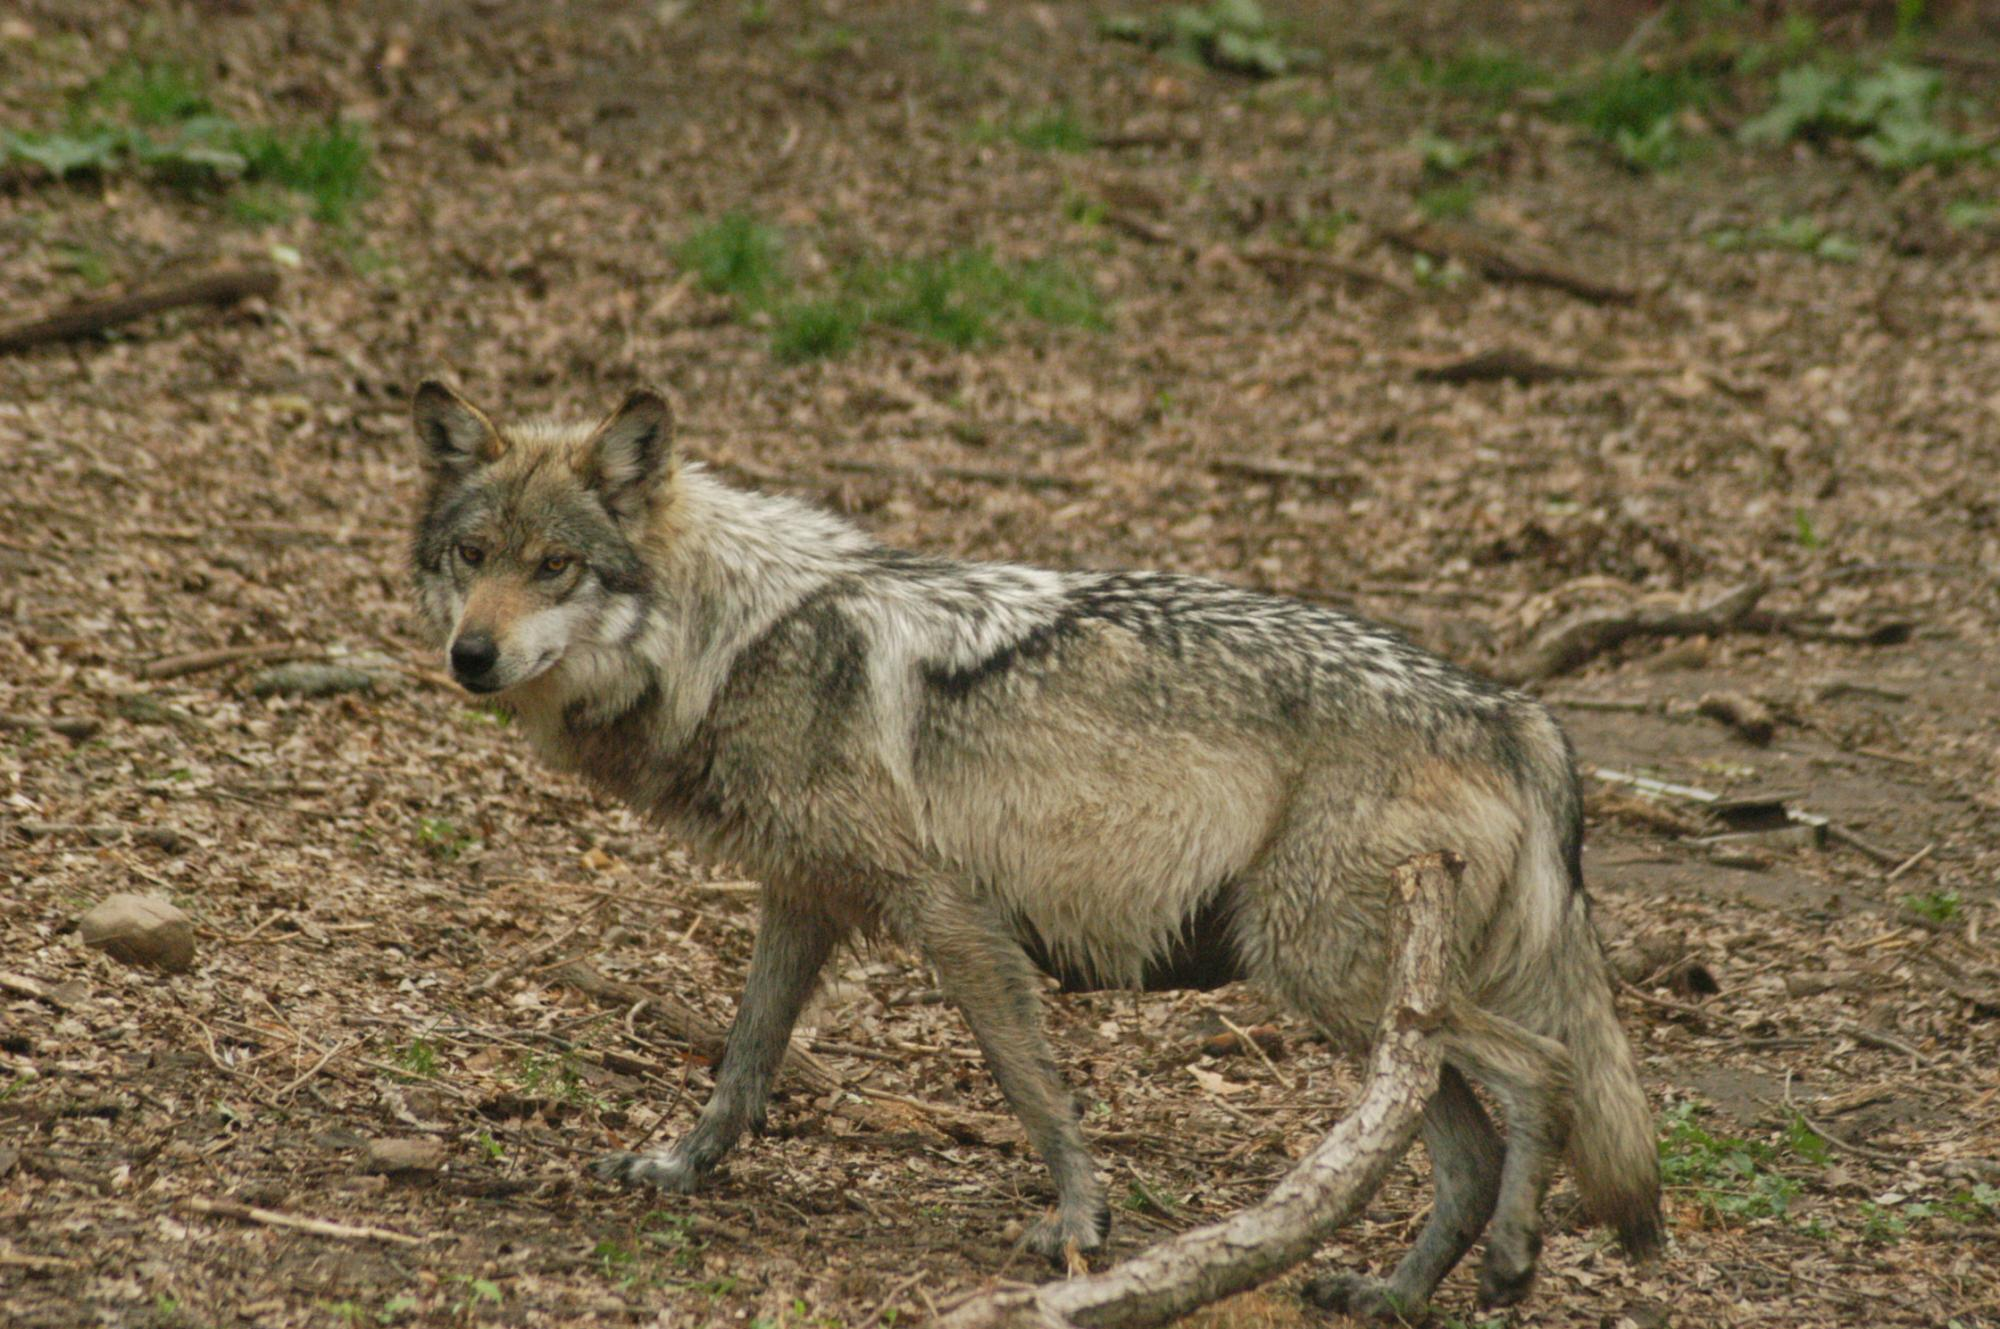 Research has verified the genetic purity of the endangered Mexican wolf, which is being reintroduced to its native habitat and living wild in places such as the Sevilleta National Wildlife Refuge in New Mexico.